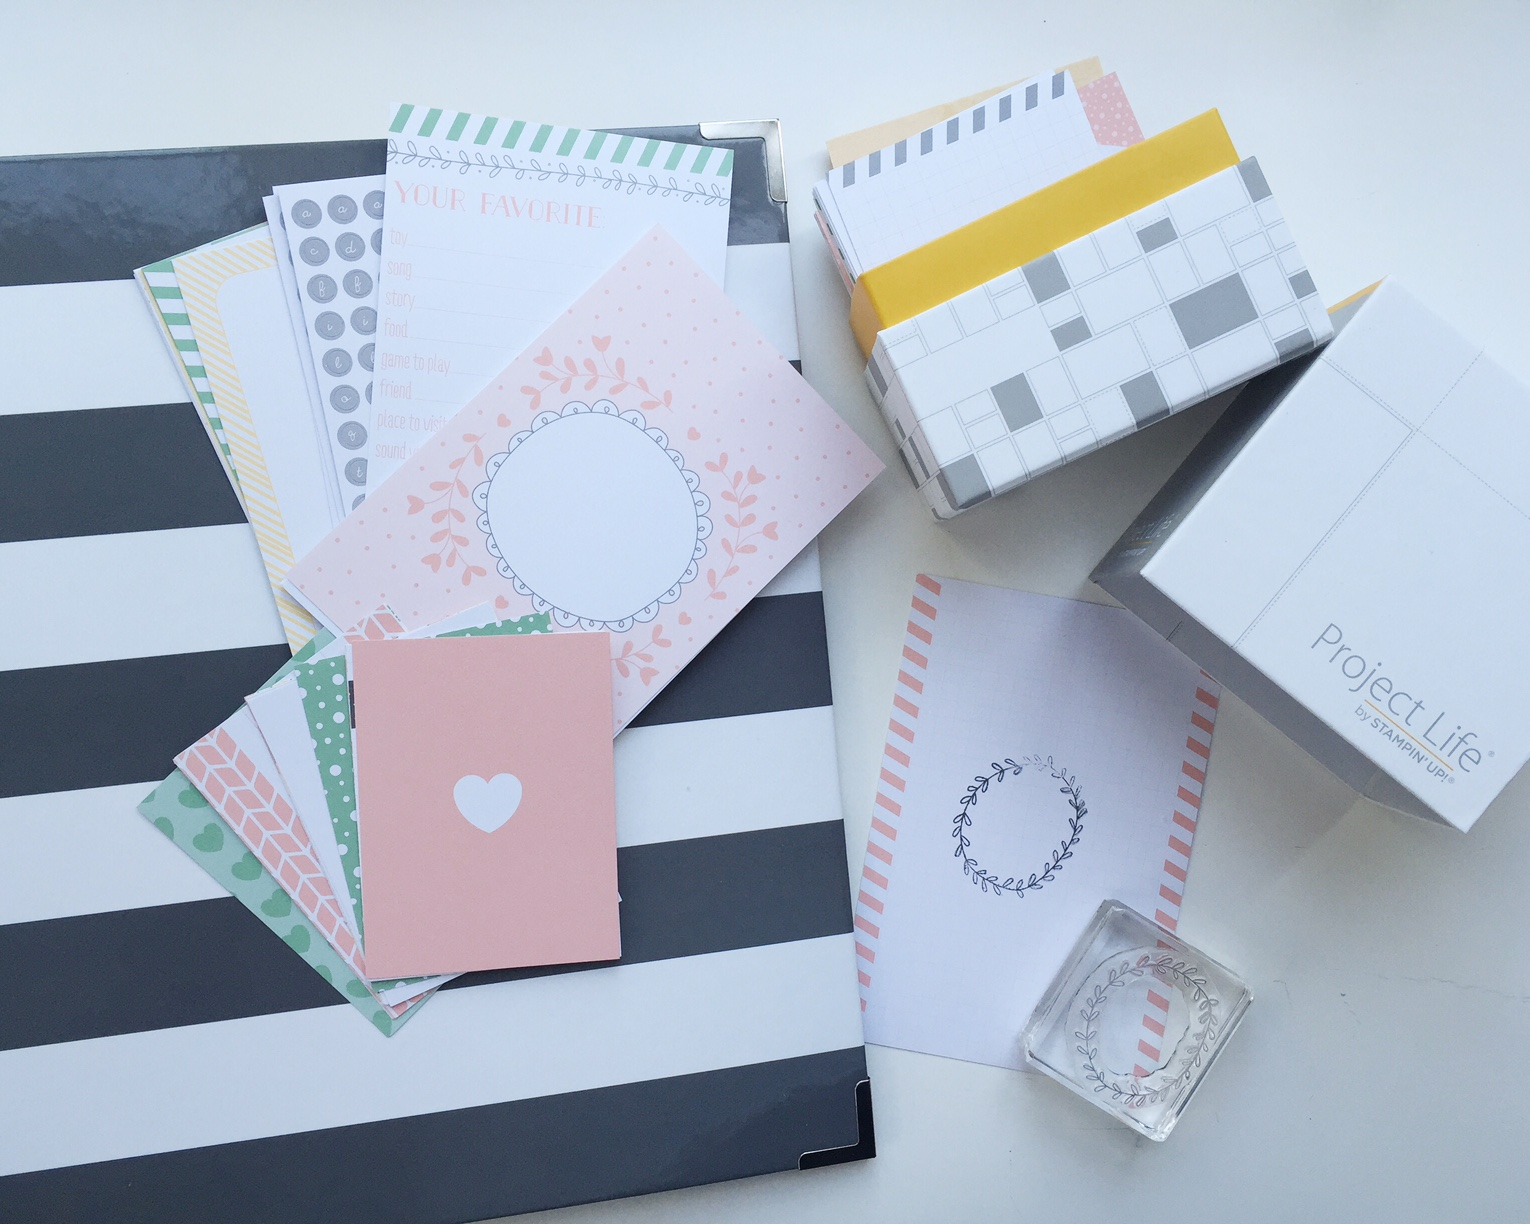 stampin' up - fotoalbum einmal anders! - mother's finest